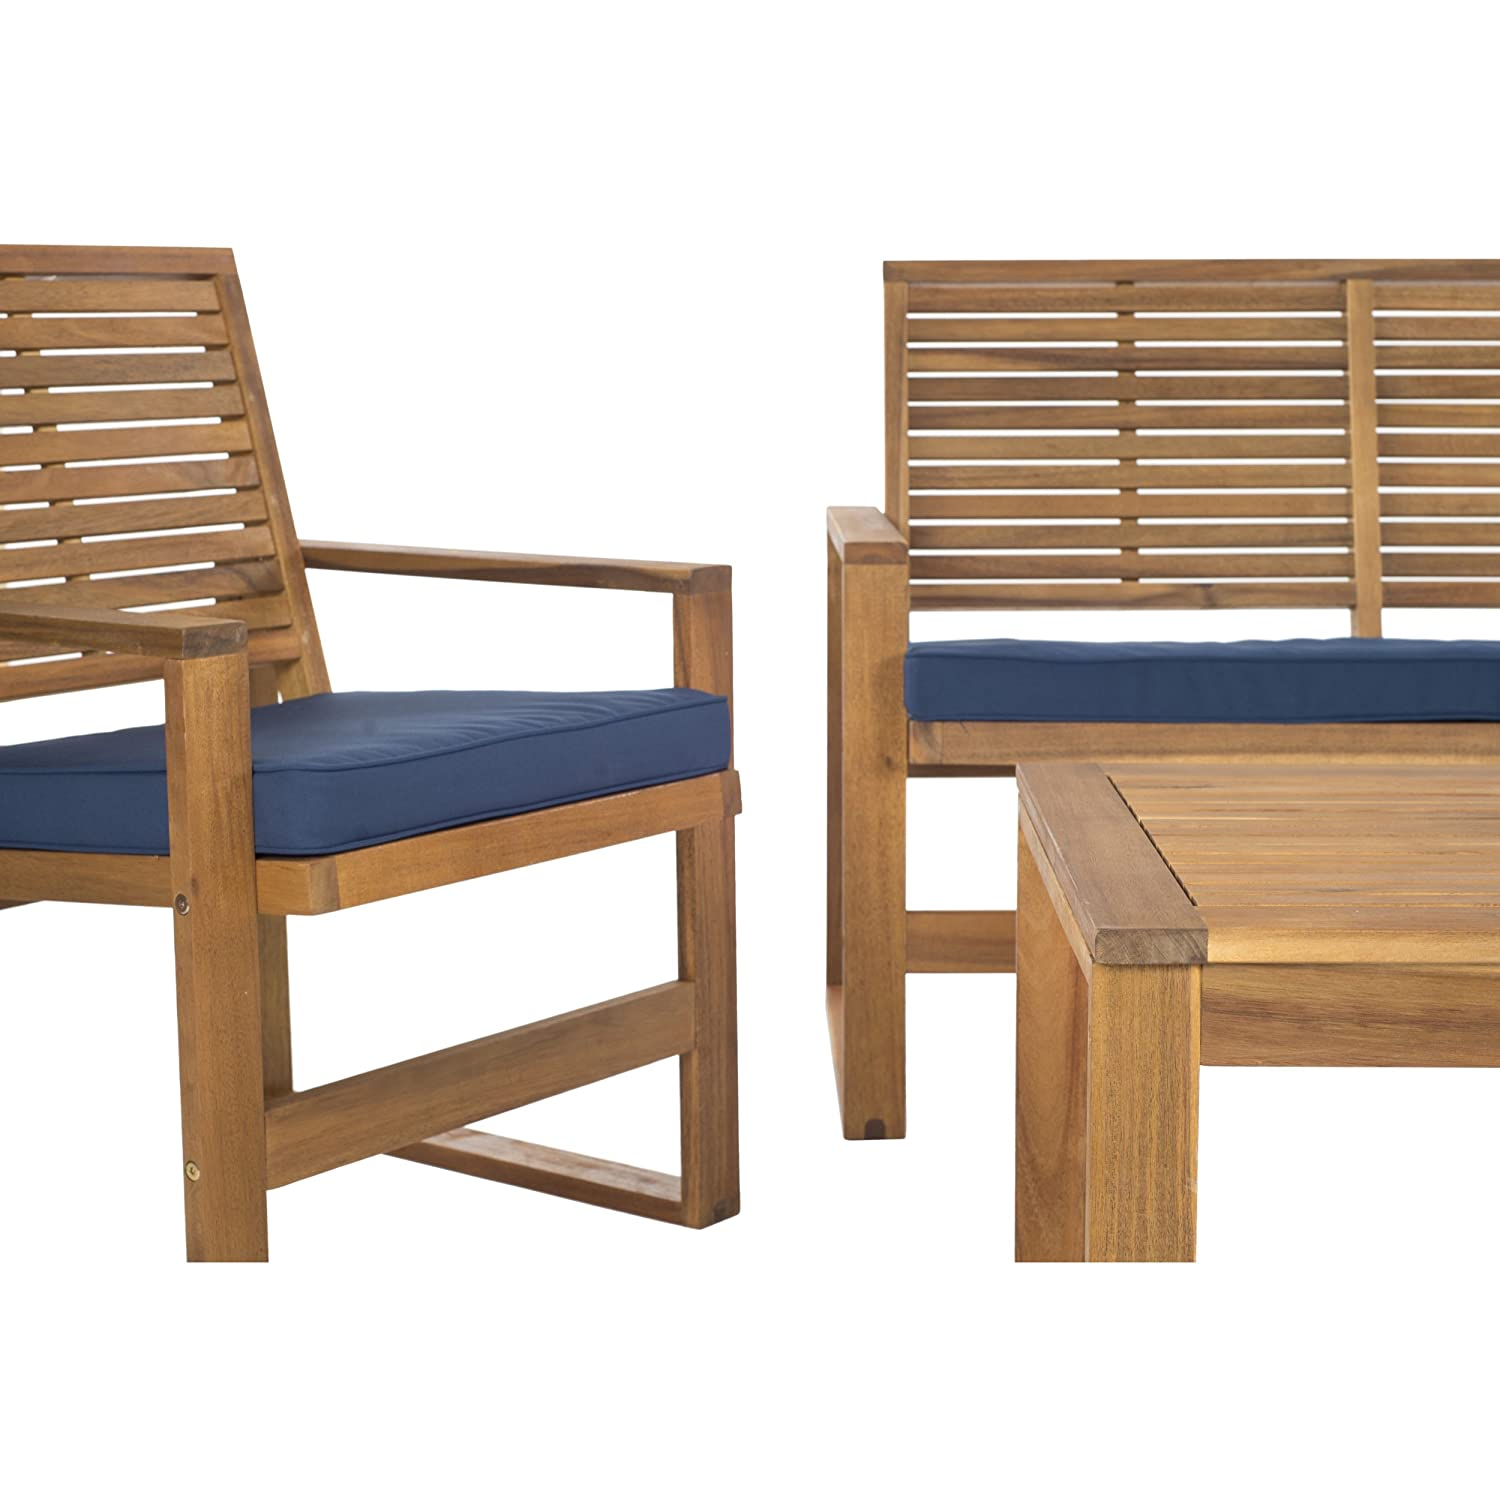 Amazon.com : Safavieh Home Collection Hailey Outdoor Living 4 Piece Acacia Patio  Furniture Set, Brown And Navy : Garden U0026 Outdoor